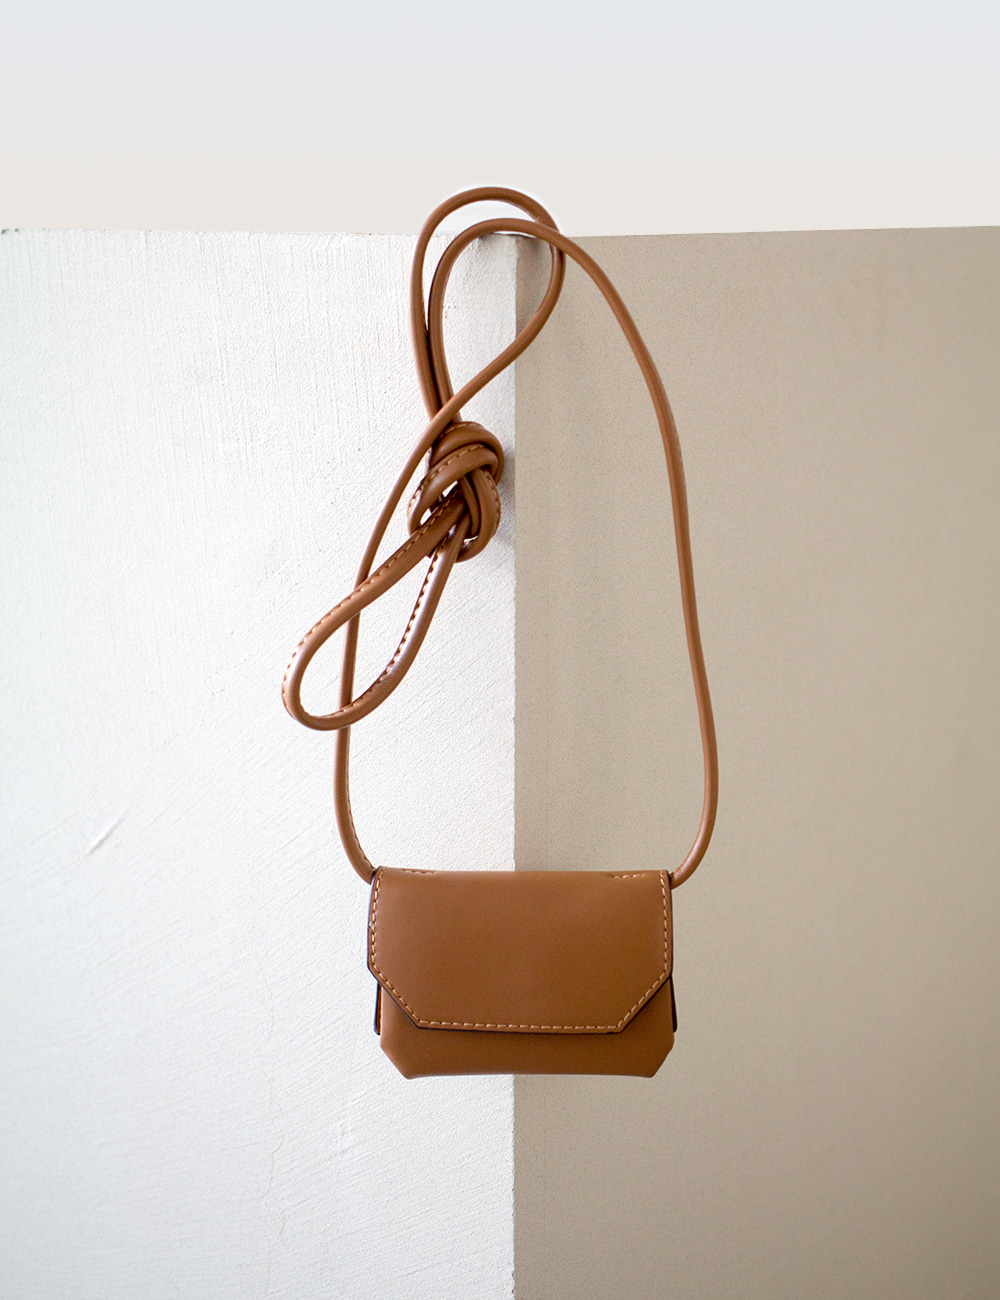 MAISON246,246 KOE WALLET BAG - TAN,No.246